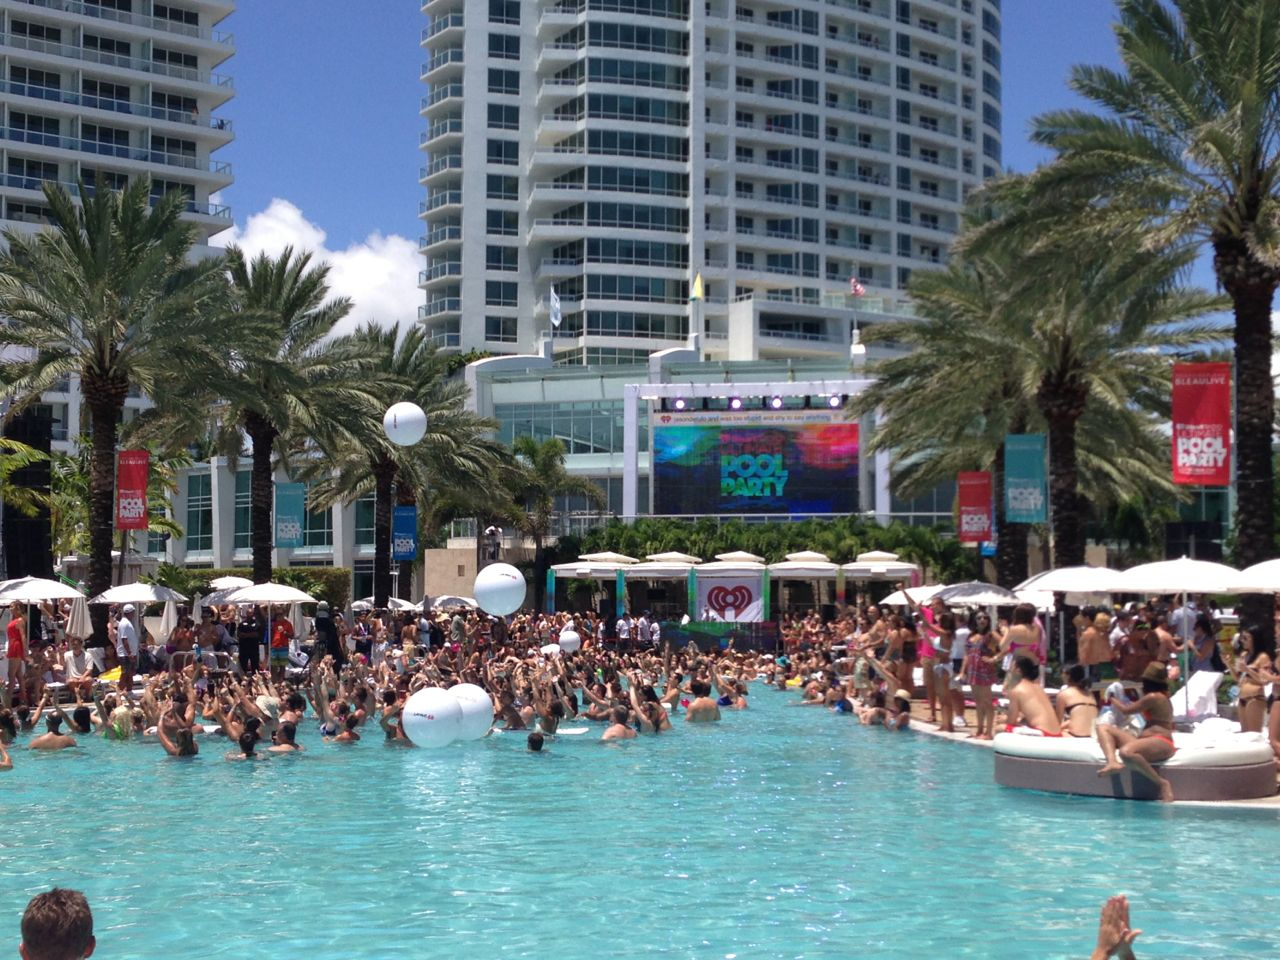 The Ultimate Pool Party begins!